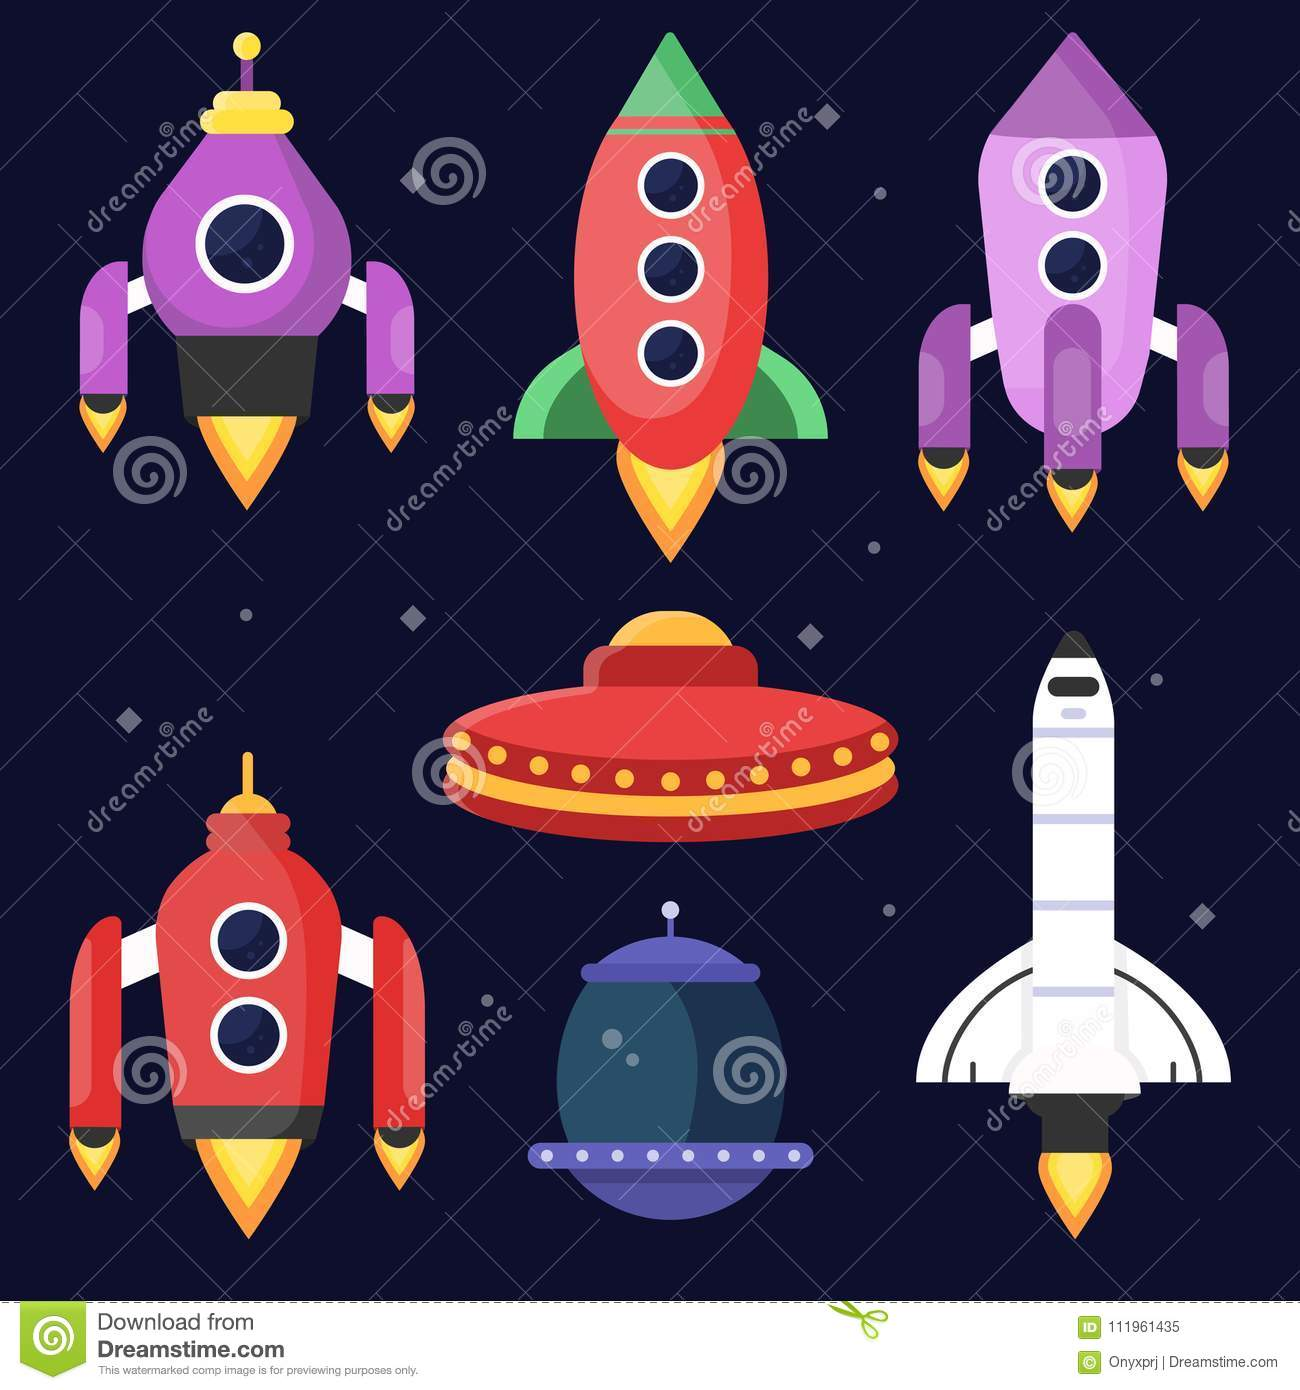 Rockets and space shuttles. Vector illustrations in flat style